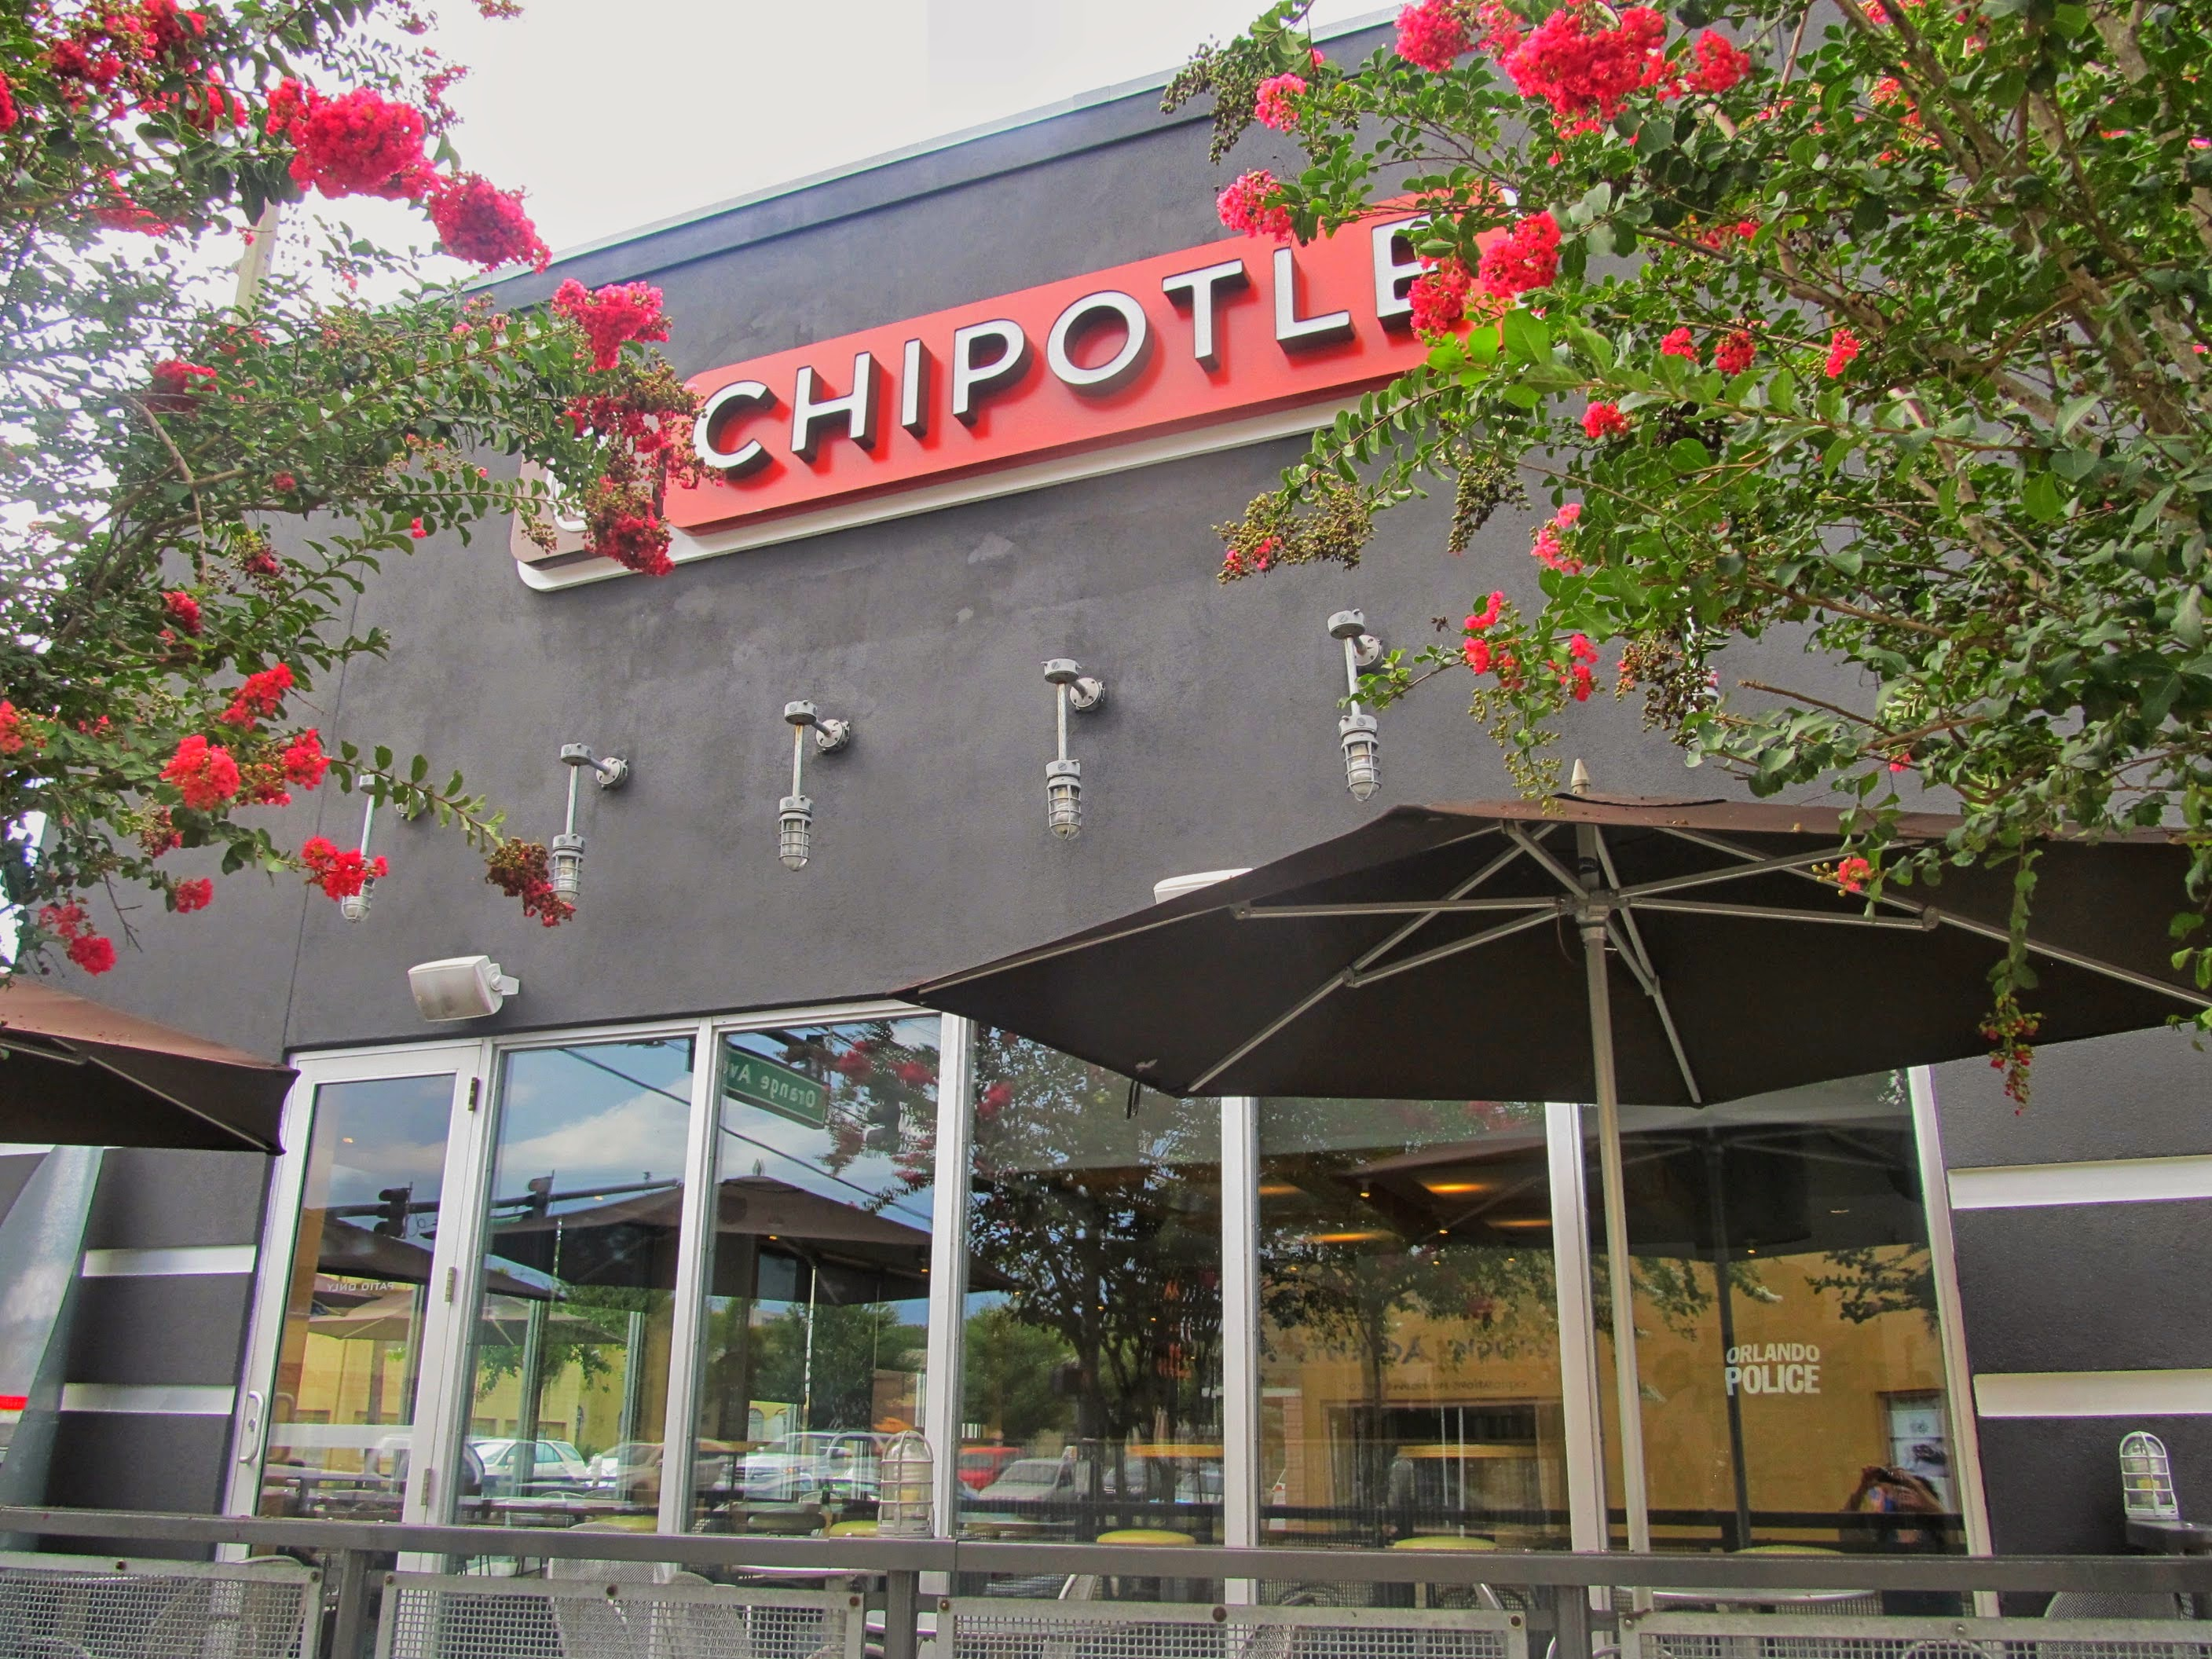 File:Chipotle.jpg - Wikimedia Commons